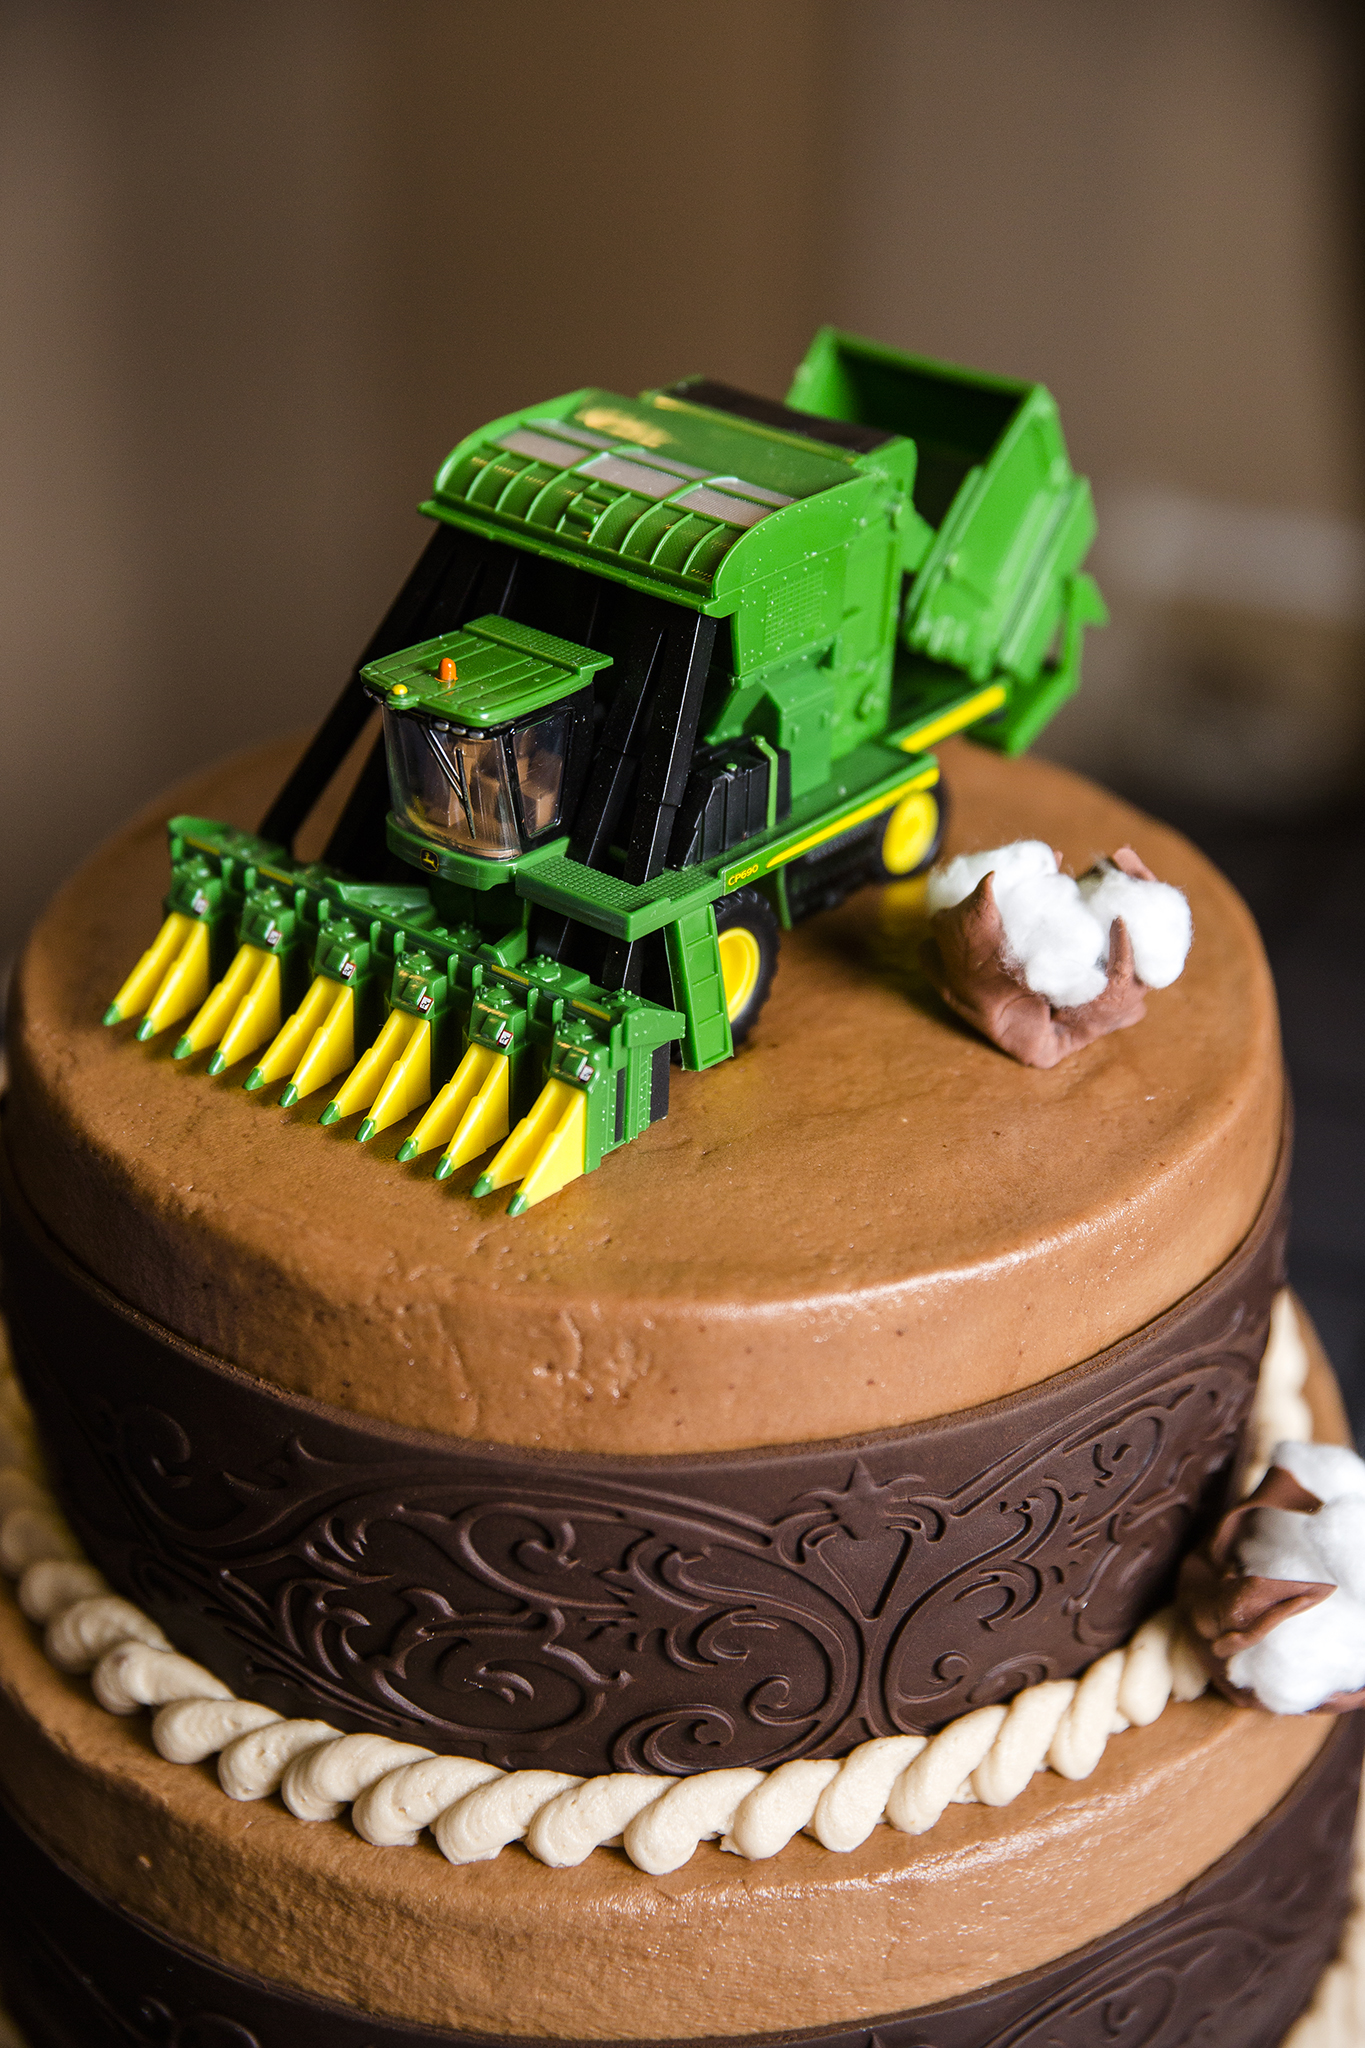 cake details, wedding day details, john deer, tractor, groom's cake